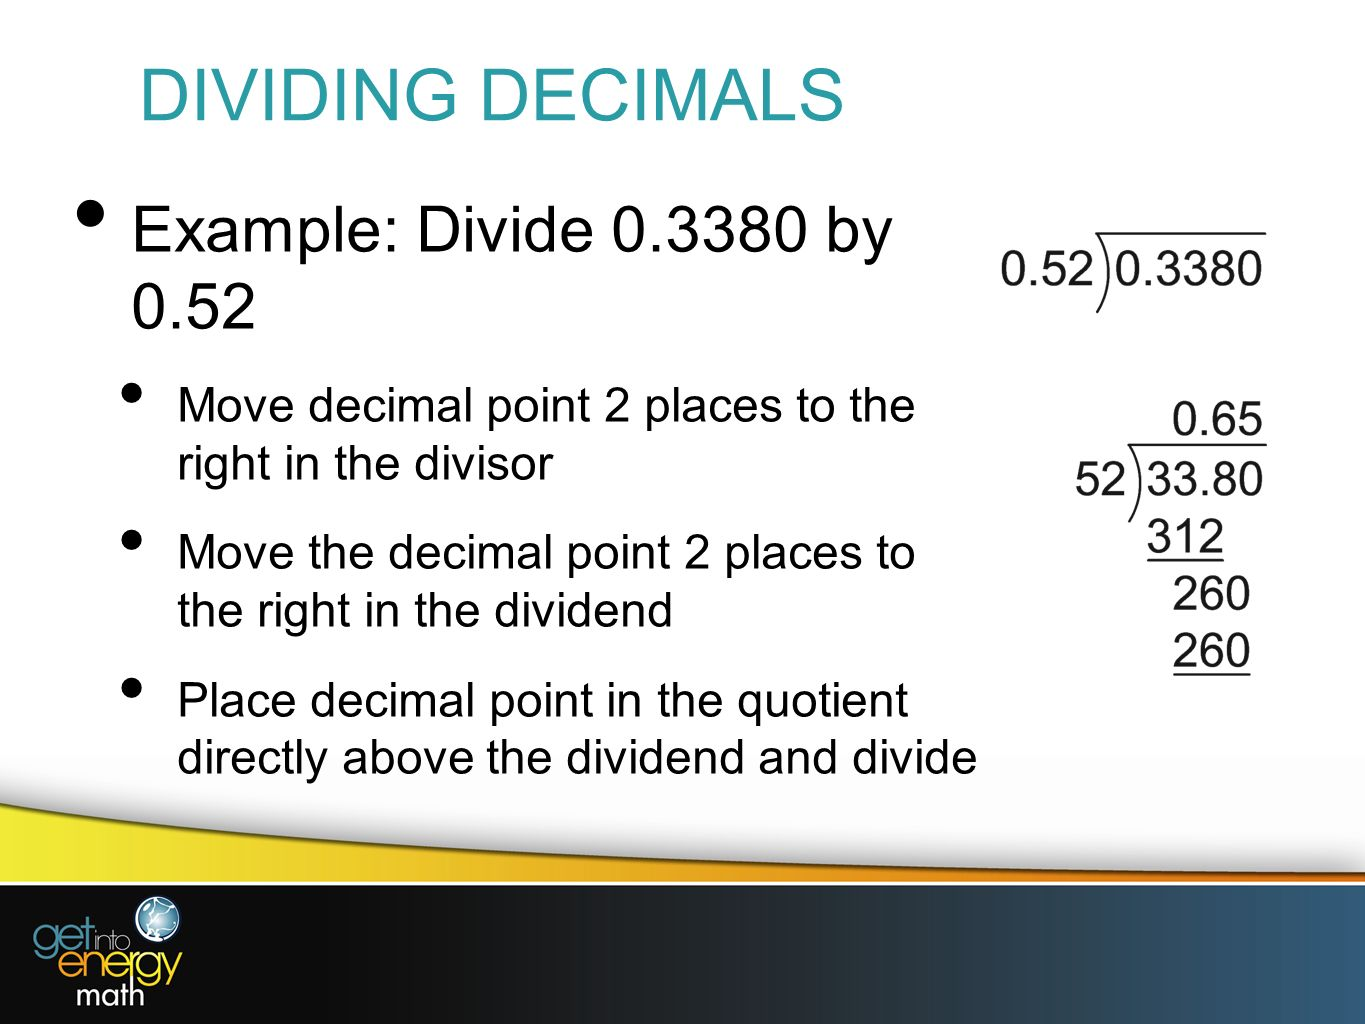 Worksheet Examples Of Dividing Decimals presentation 6 decimal fractions a dividing by powers of 10 since division is the inverse multiplication 10